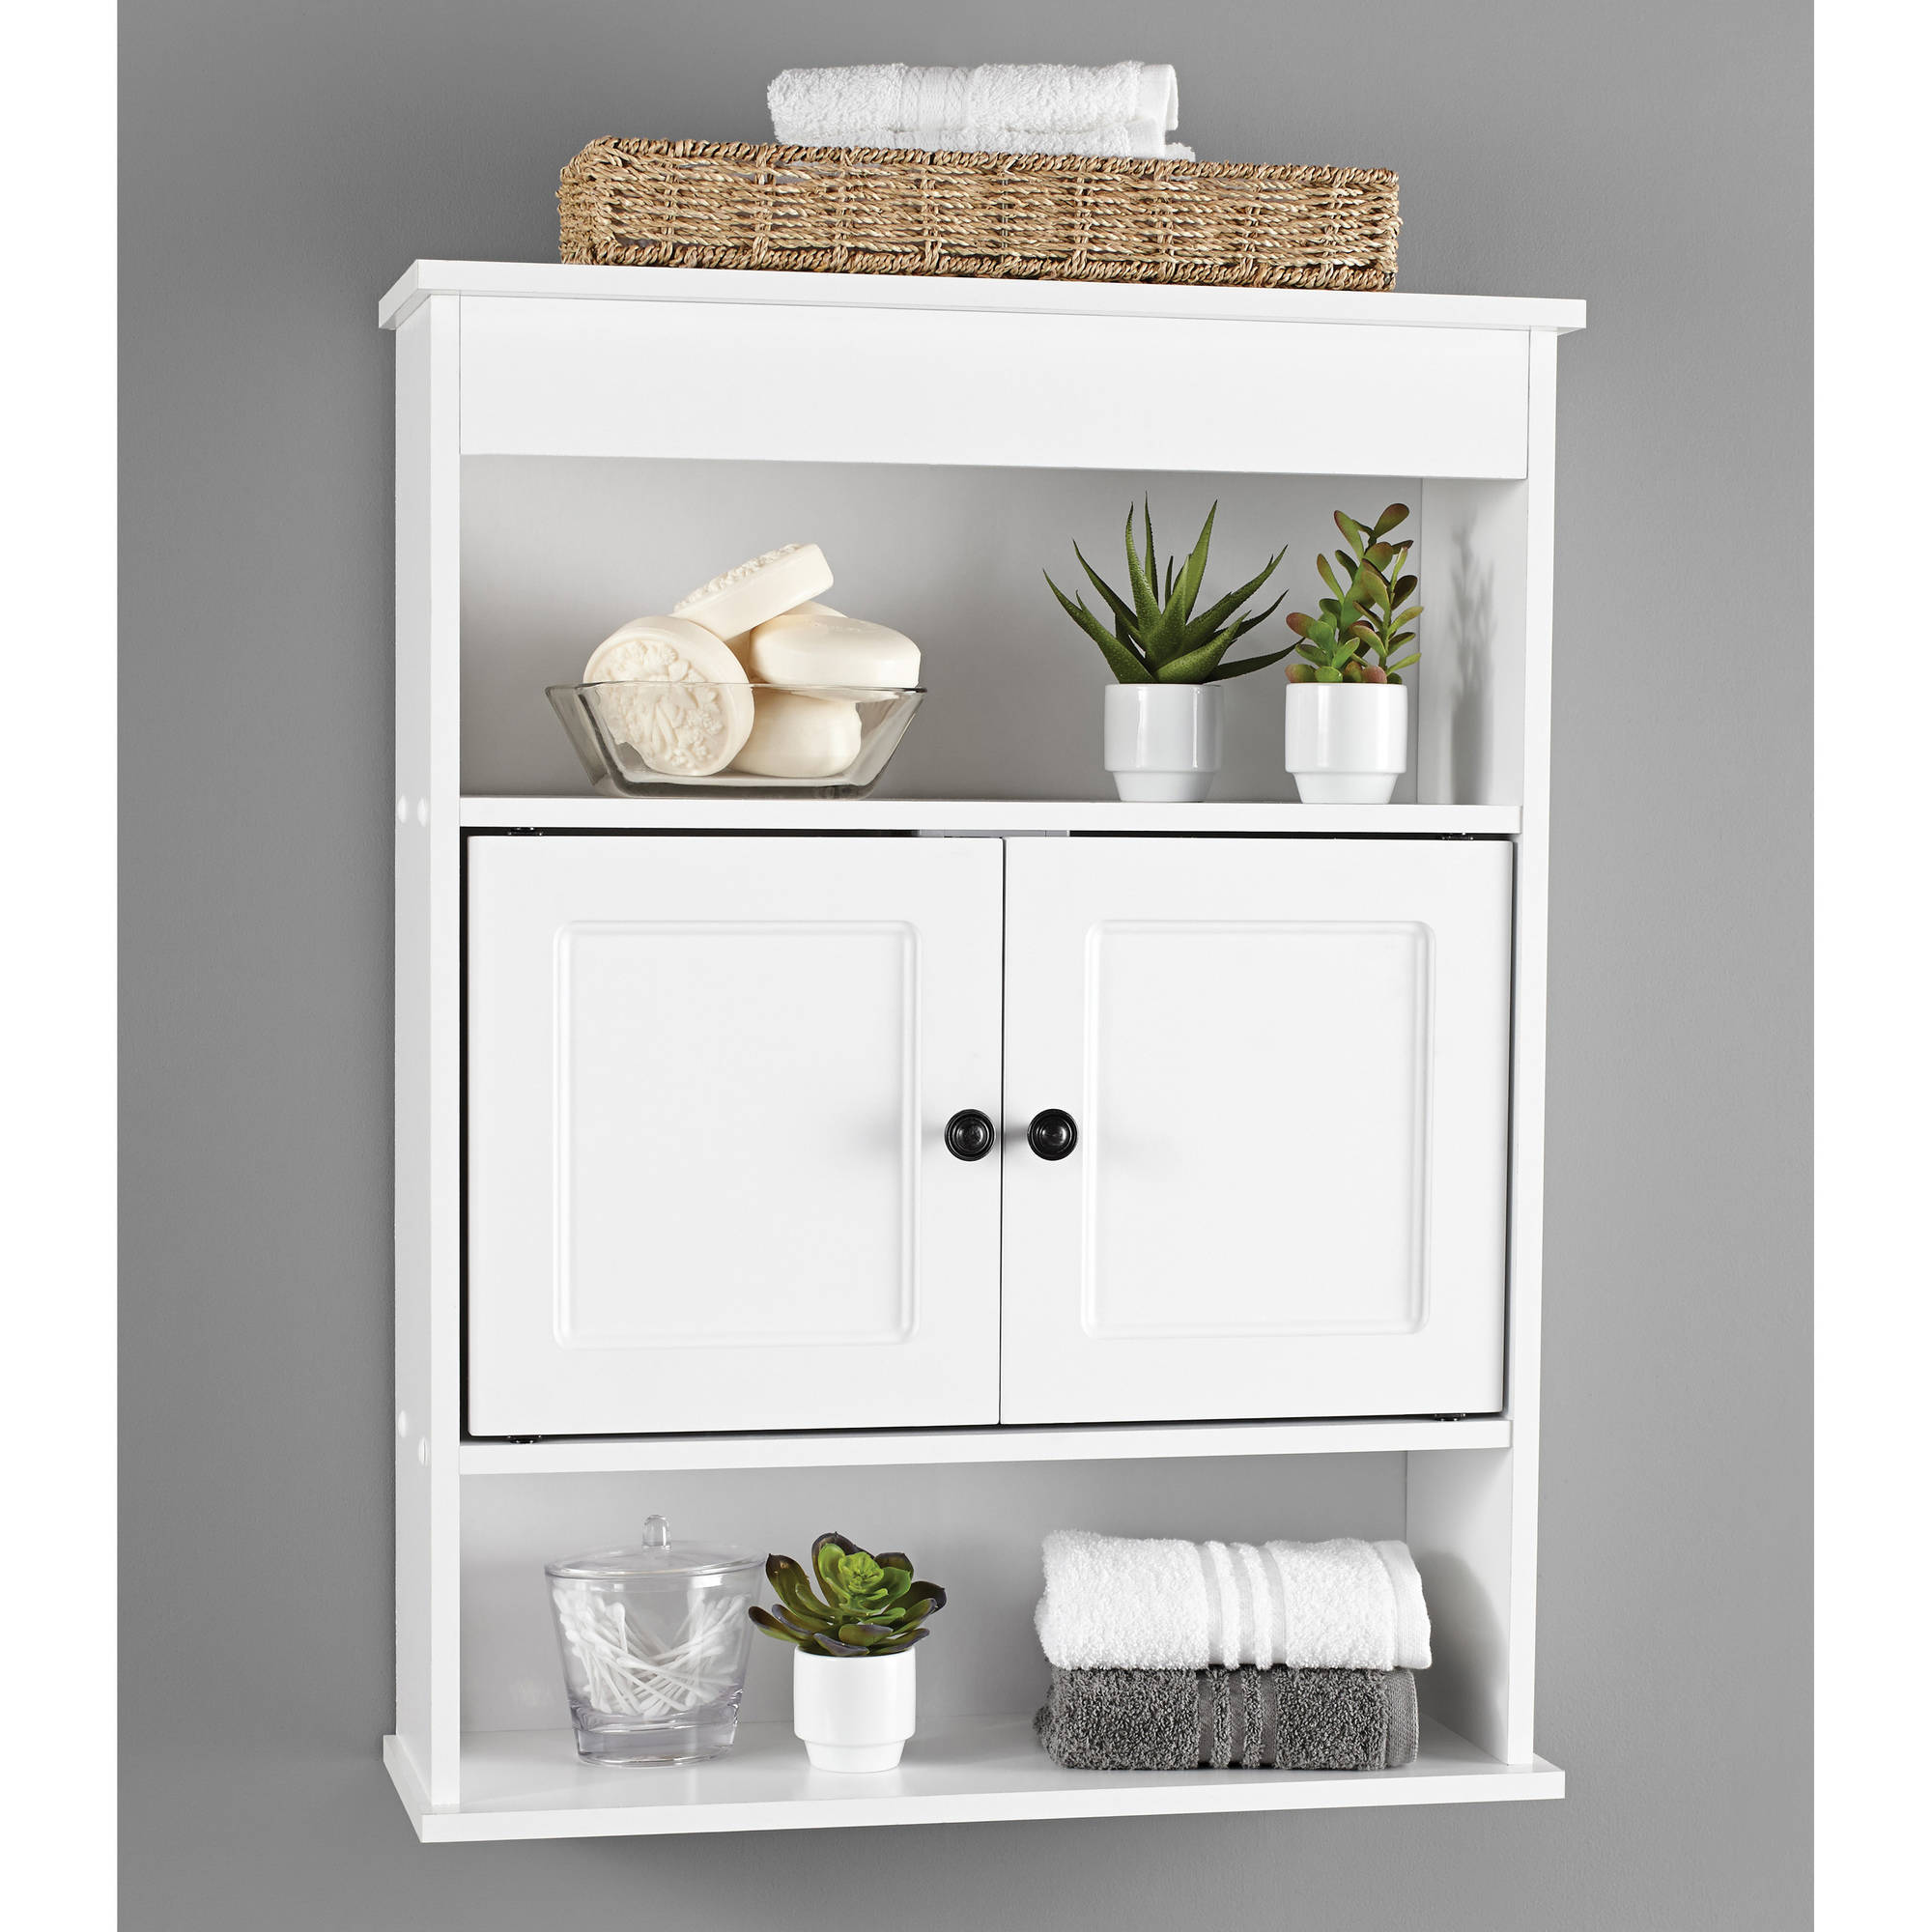 Bathroom wall cabinet white - Bathroom Wall Cabinet White 9